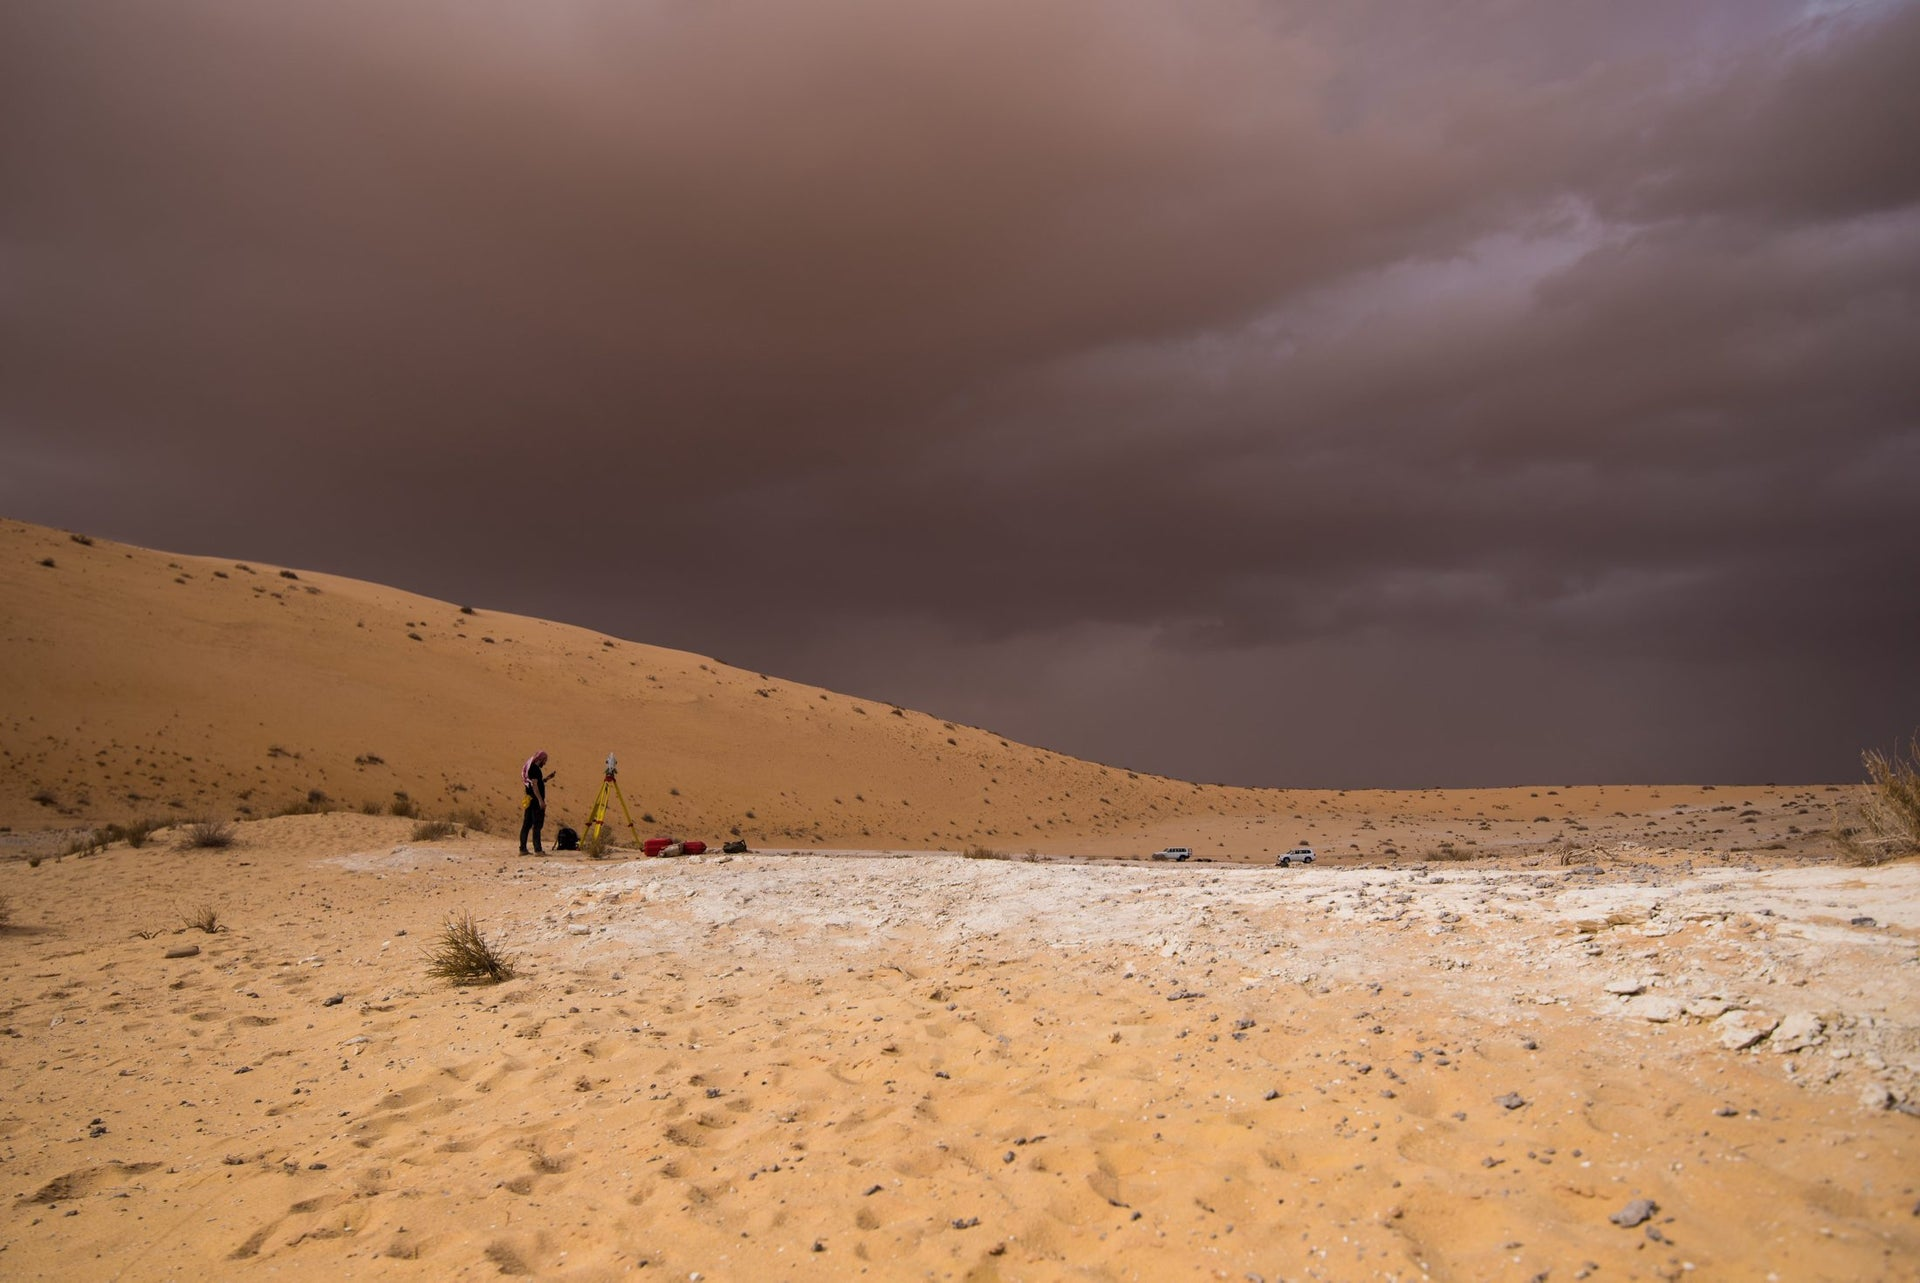 While surveying and mapping the Al Wusta site during the excavation, al-Nefud desert, Saudi Arabia